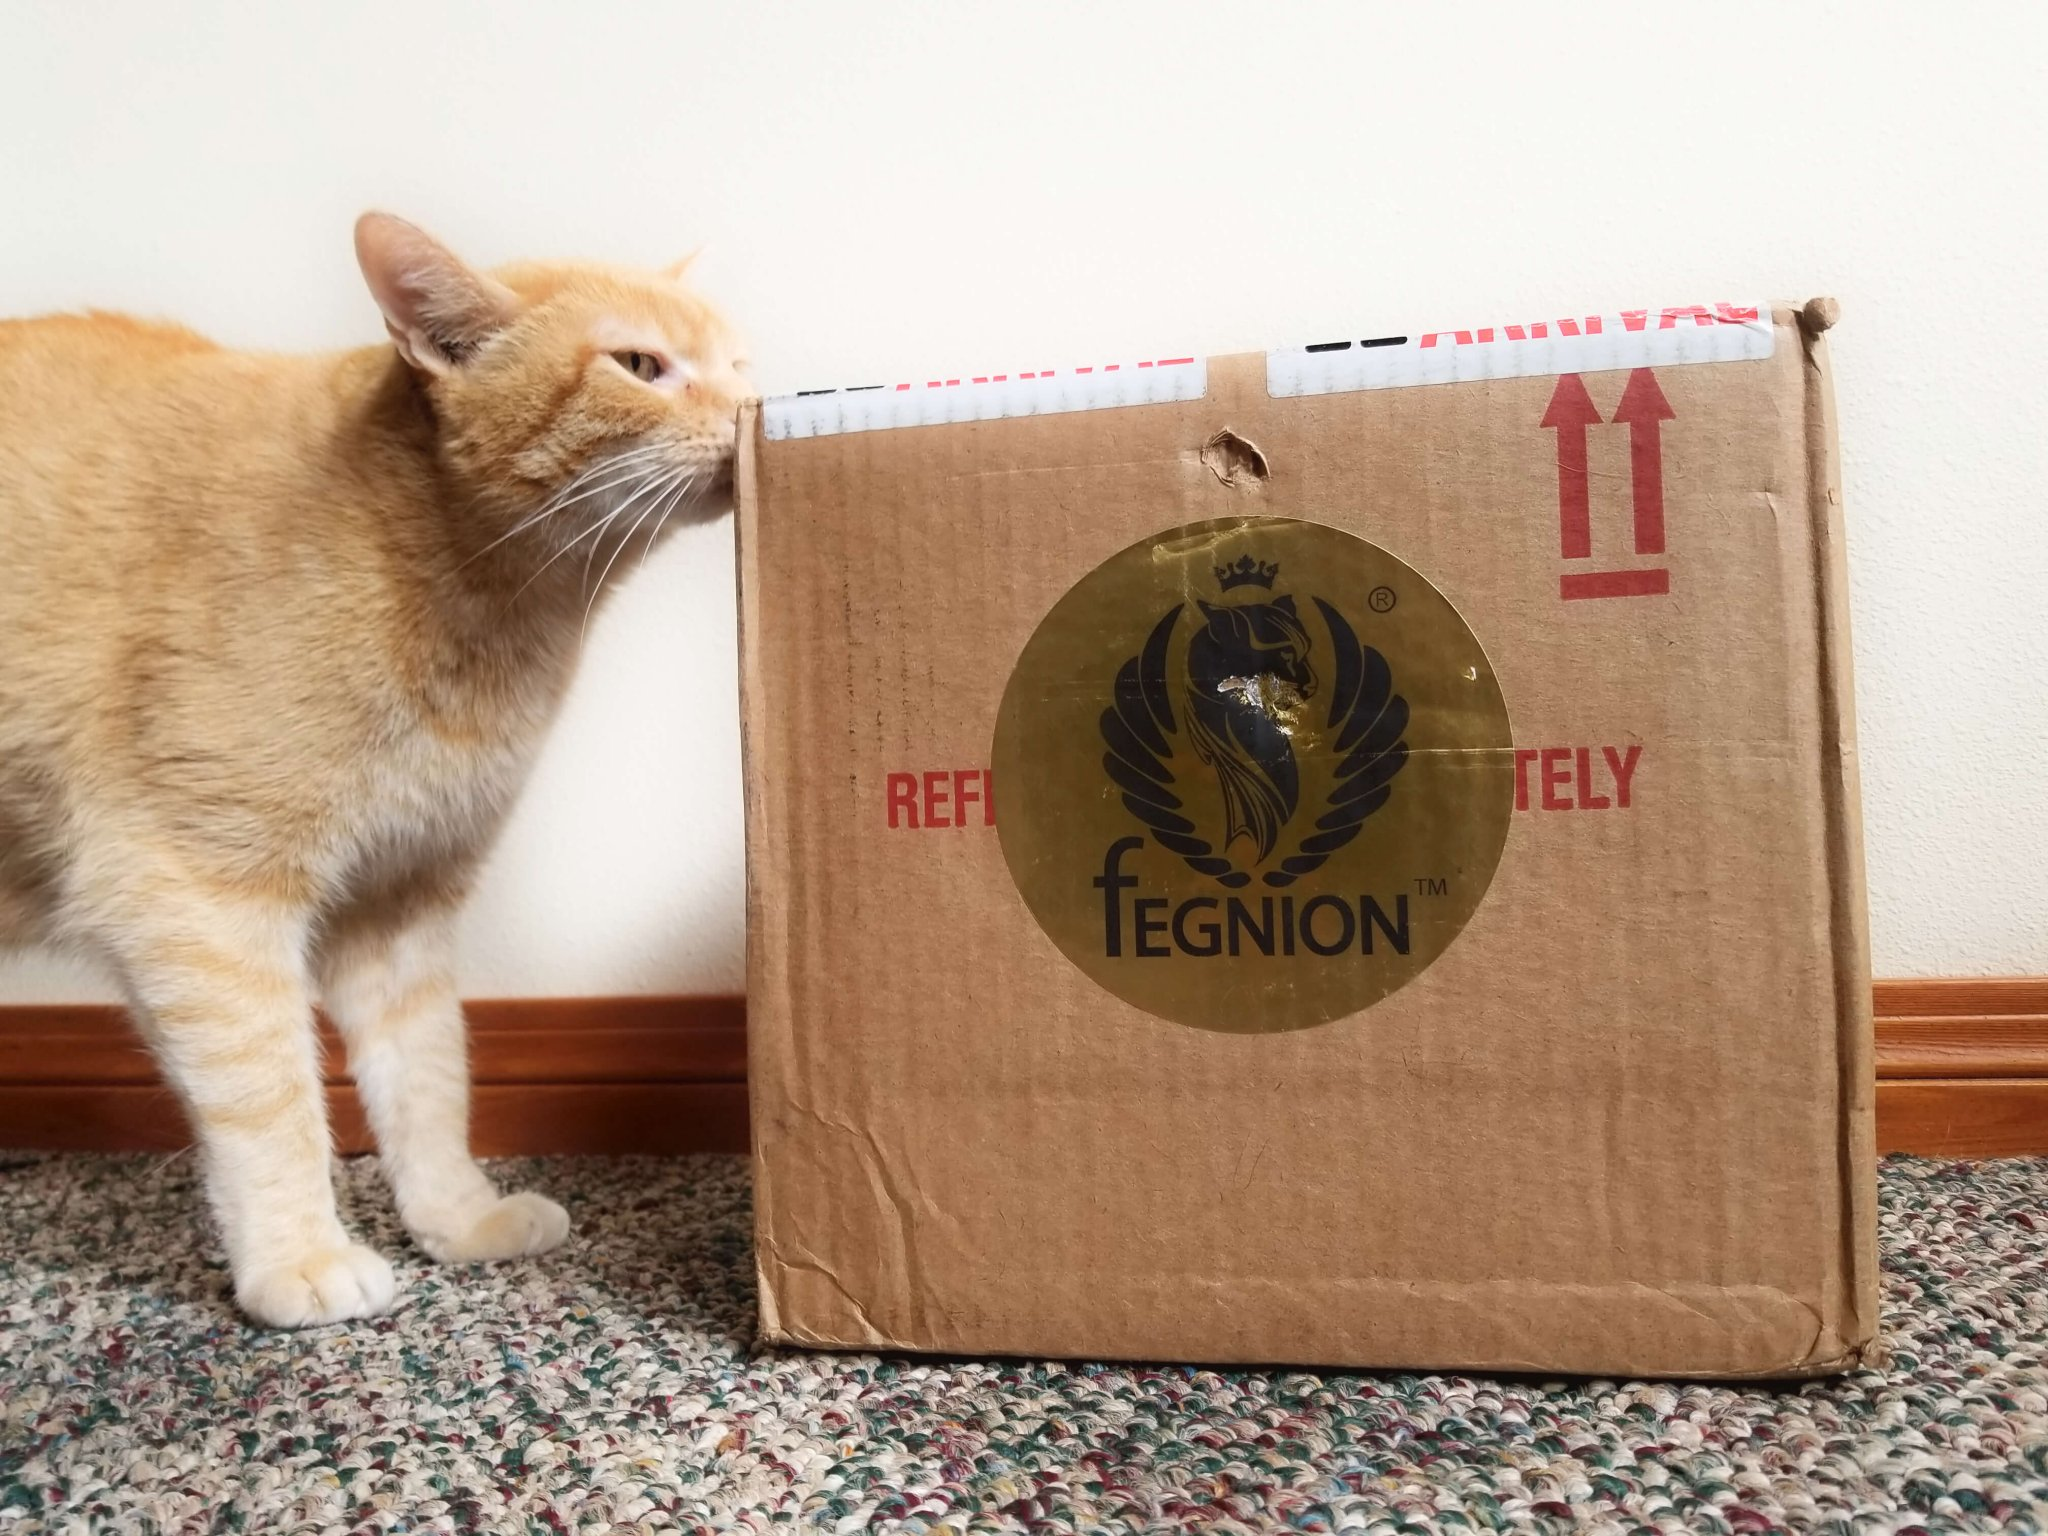 Wessie Encounters the Fegnion Box